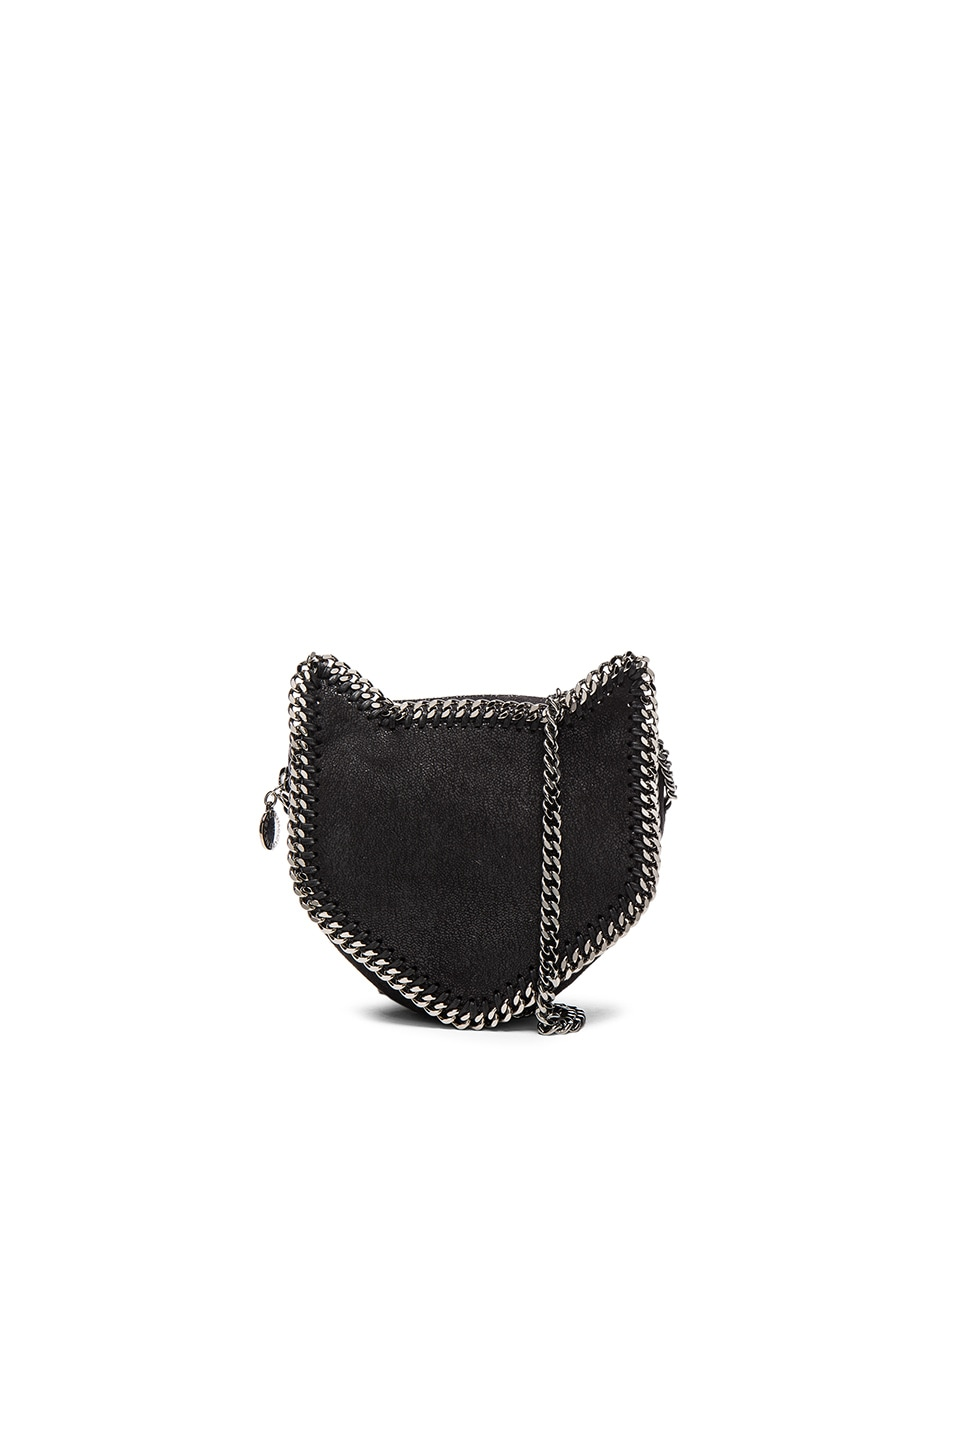 7adb9508ef0a3 Image 1 of Stella McCartney Cat Crossbody in Black